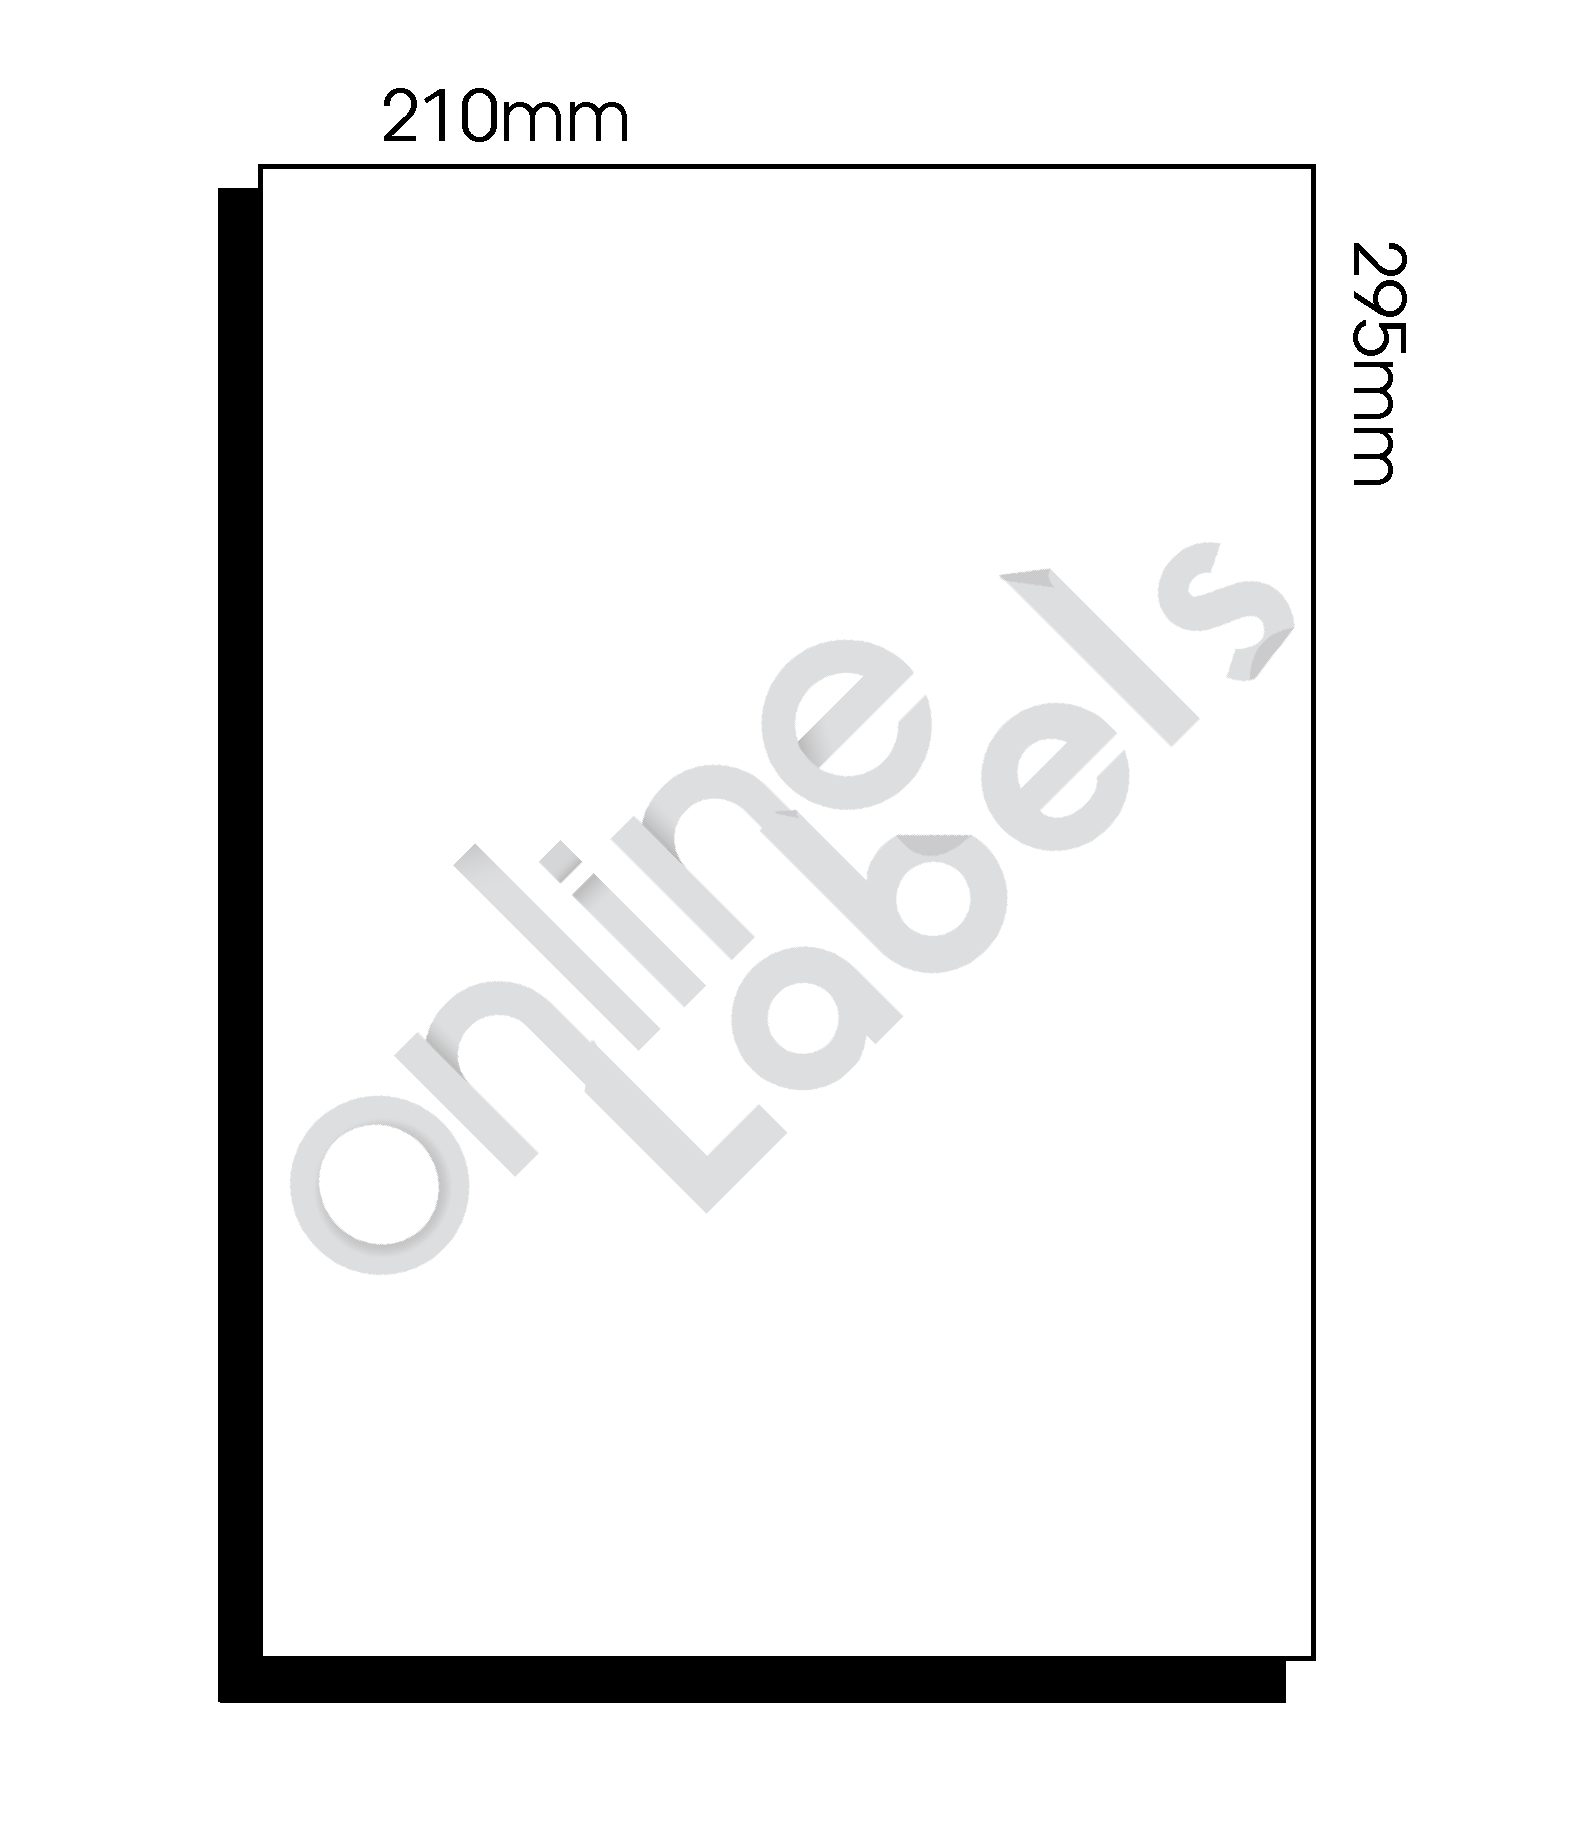 210mm x 295mm Back Slit – 1 Label per Sheet